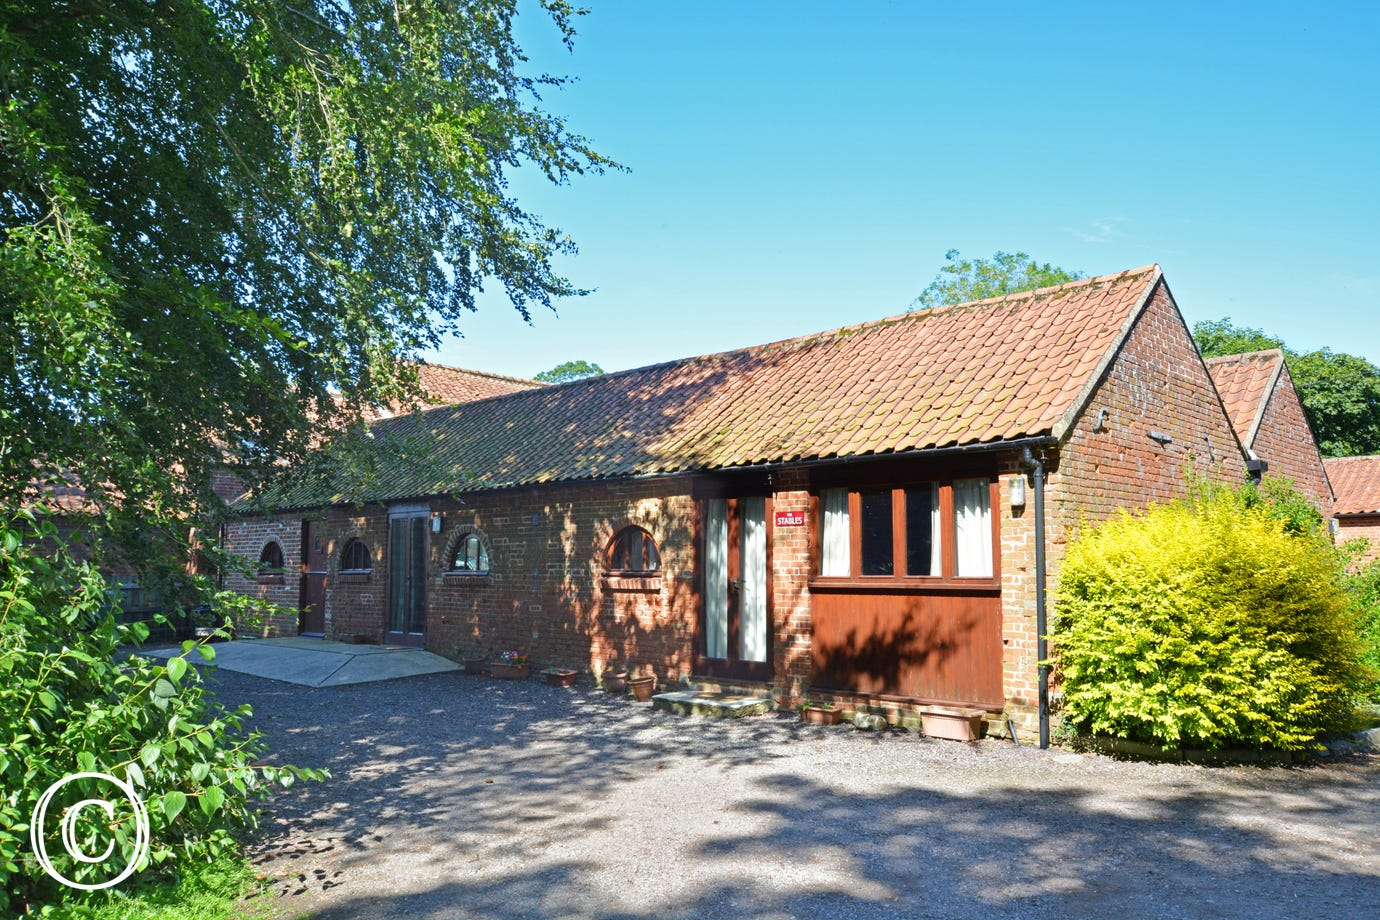 The Stables and The Orchard (property 864) are character single-storey barn conversions, which are situated in the peaceful hamlet of Primrose Green, surrounded by farmland